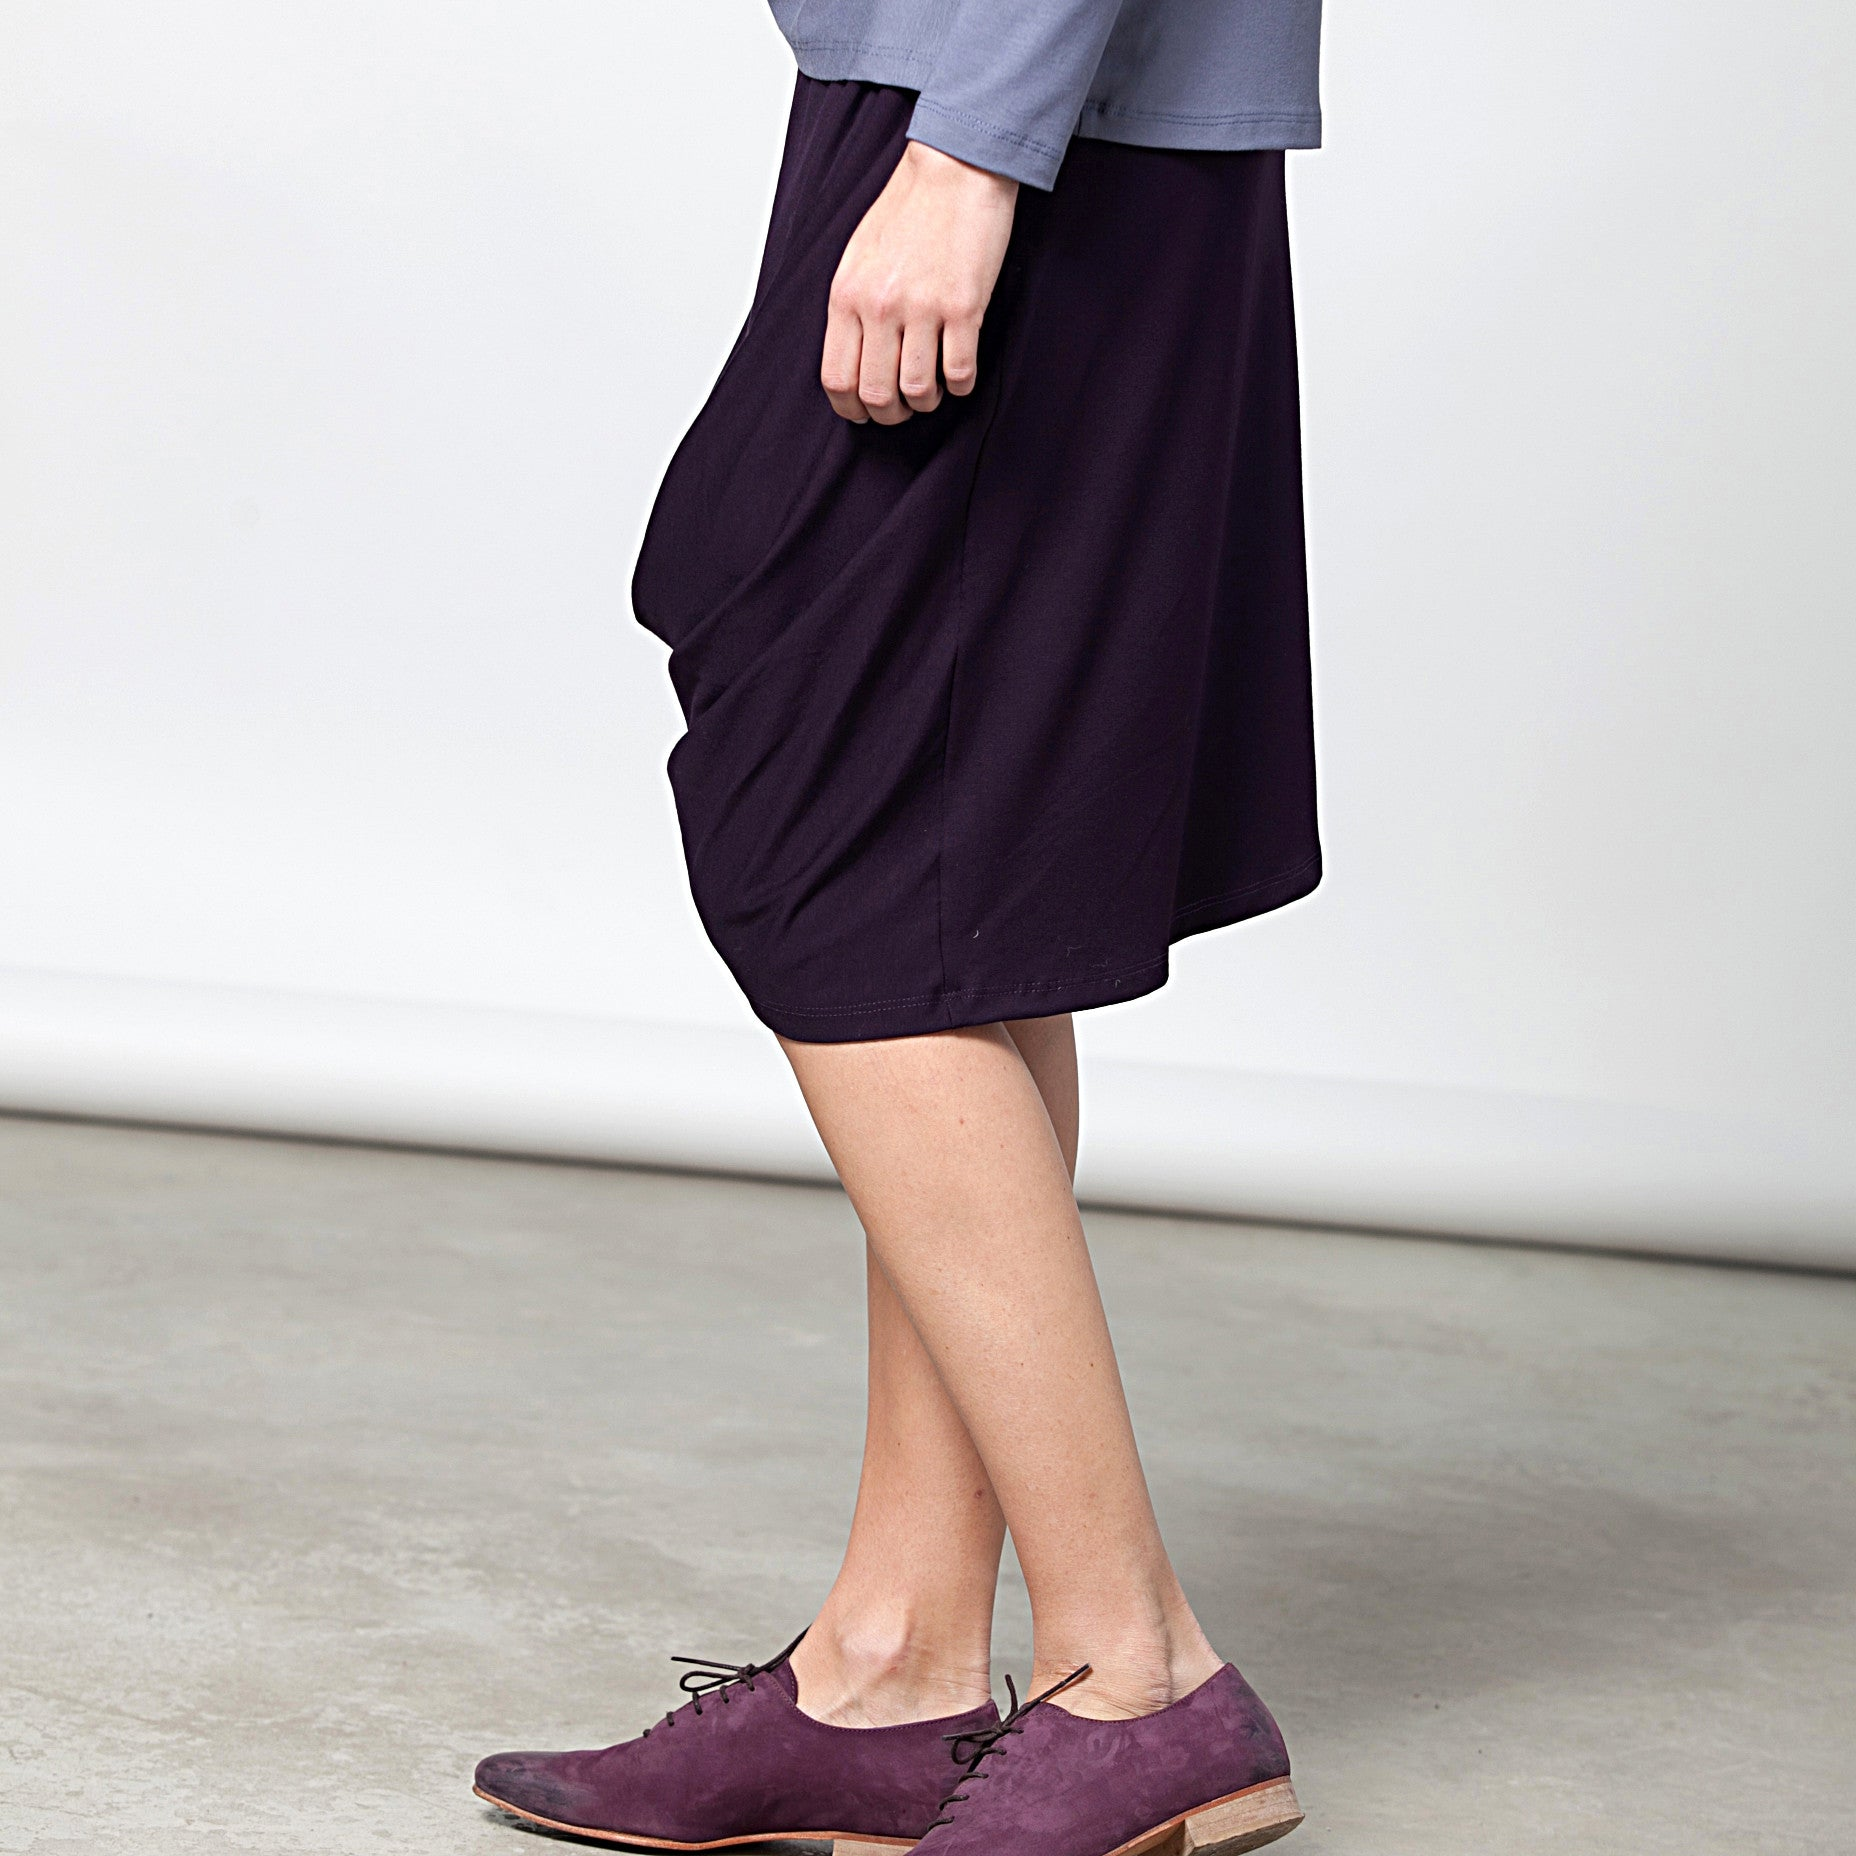 Sample Sale - Draped jersey skirt in grey stone size S-M - DuendeFashion  - 4